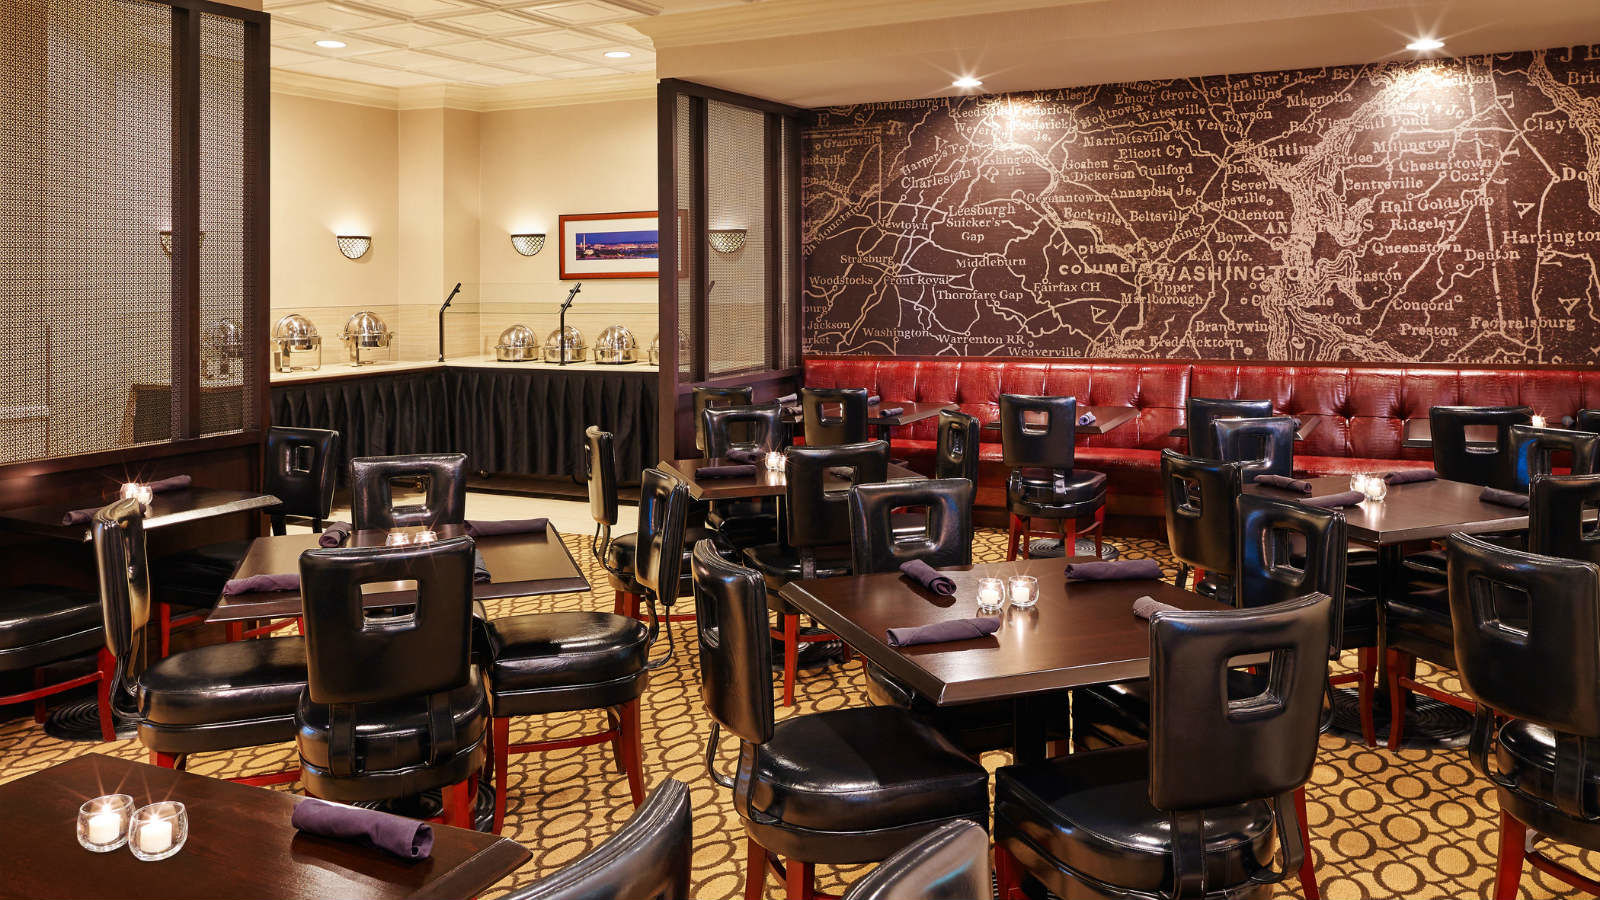 Restaurant in College Park, MD - Asado Brasserie Lounge